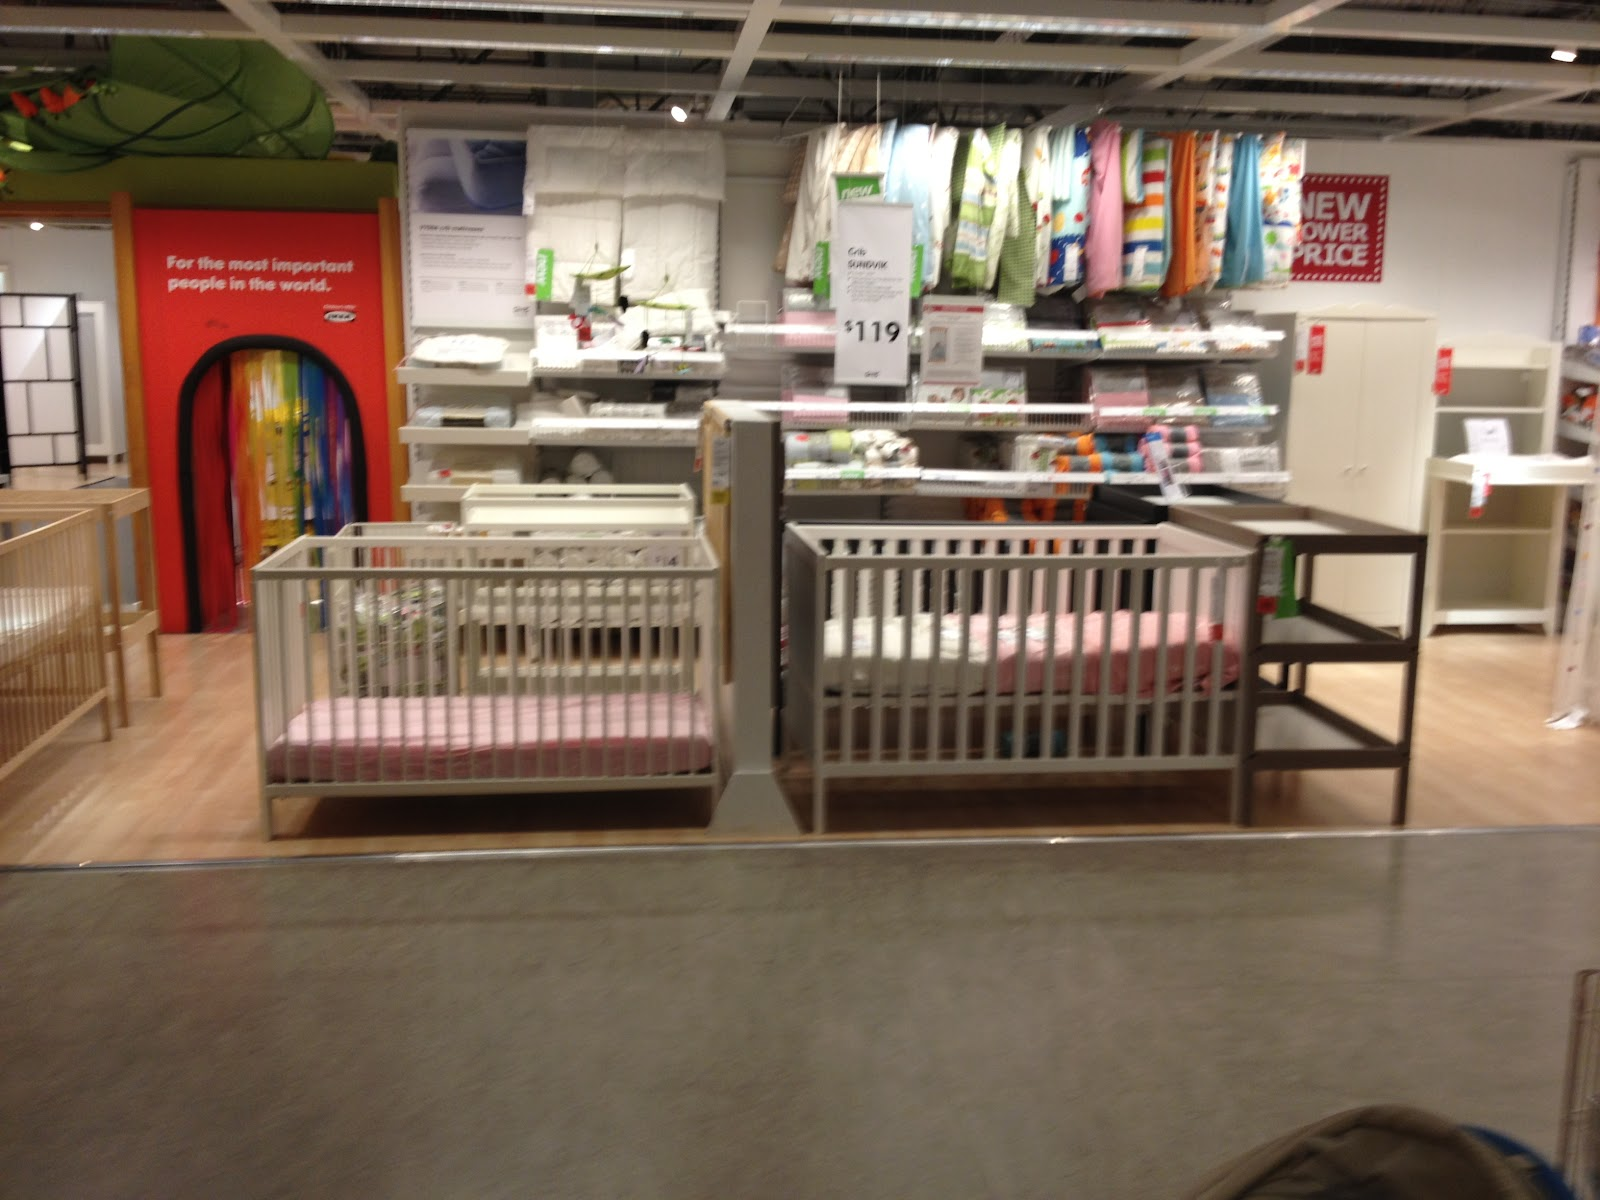 Jameson panel crib for sale - On The Left Is The Ikea Gulliver And On The Right Is The Ikea Sundvik